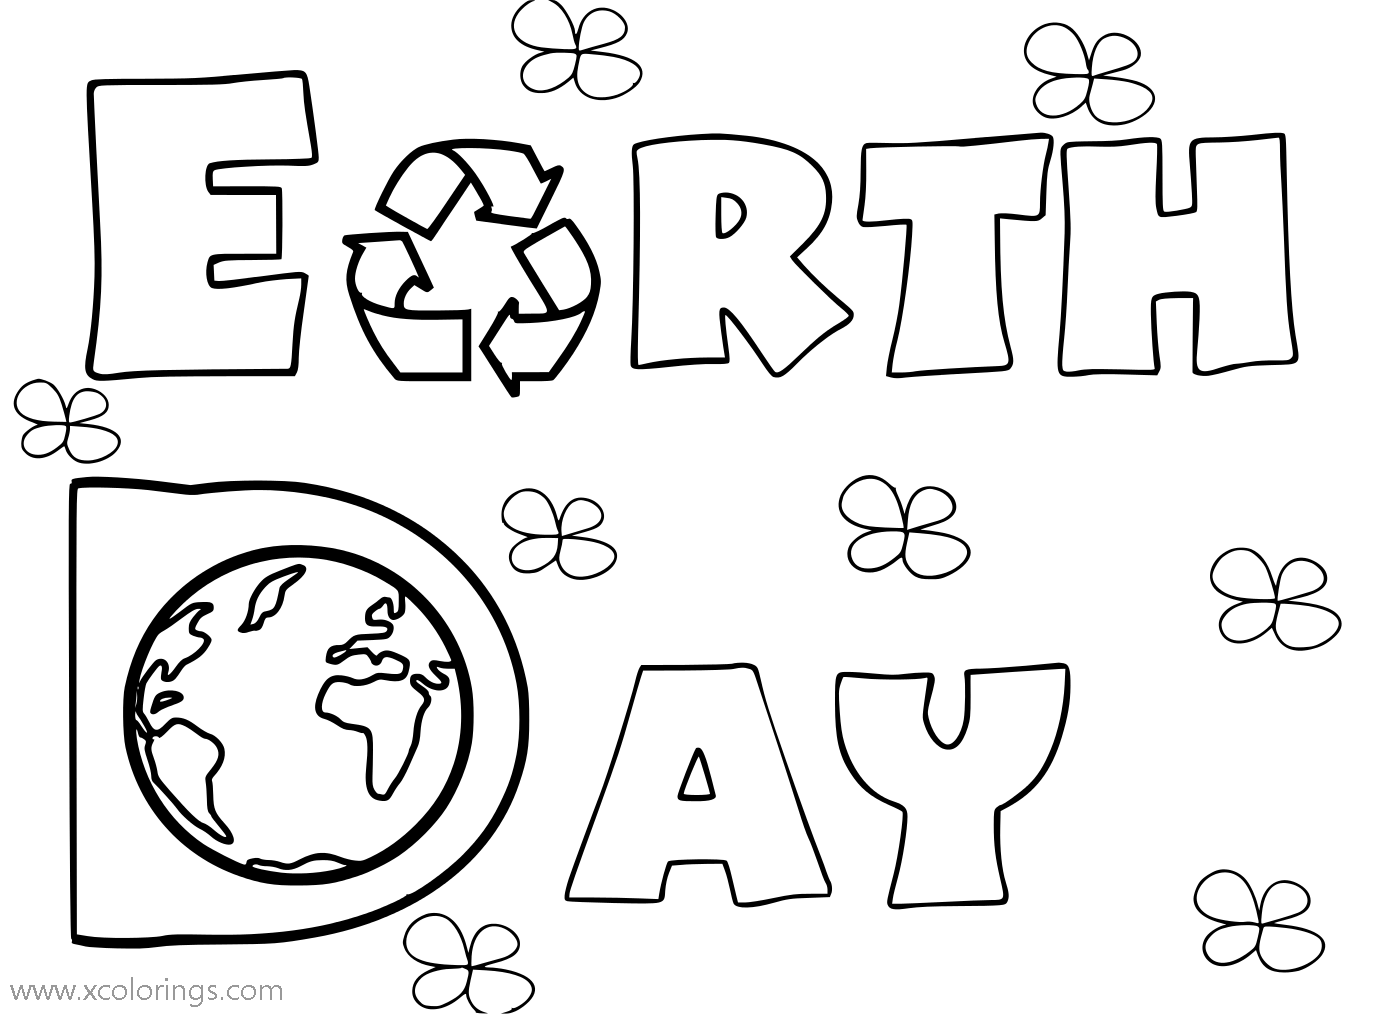 Free Earth Day Recycle Coloring Pages printable